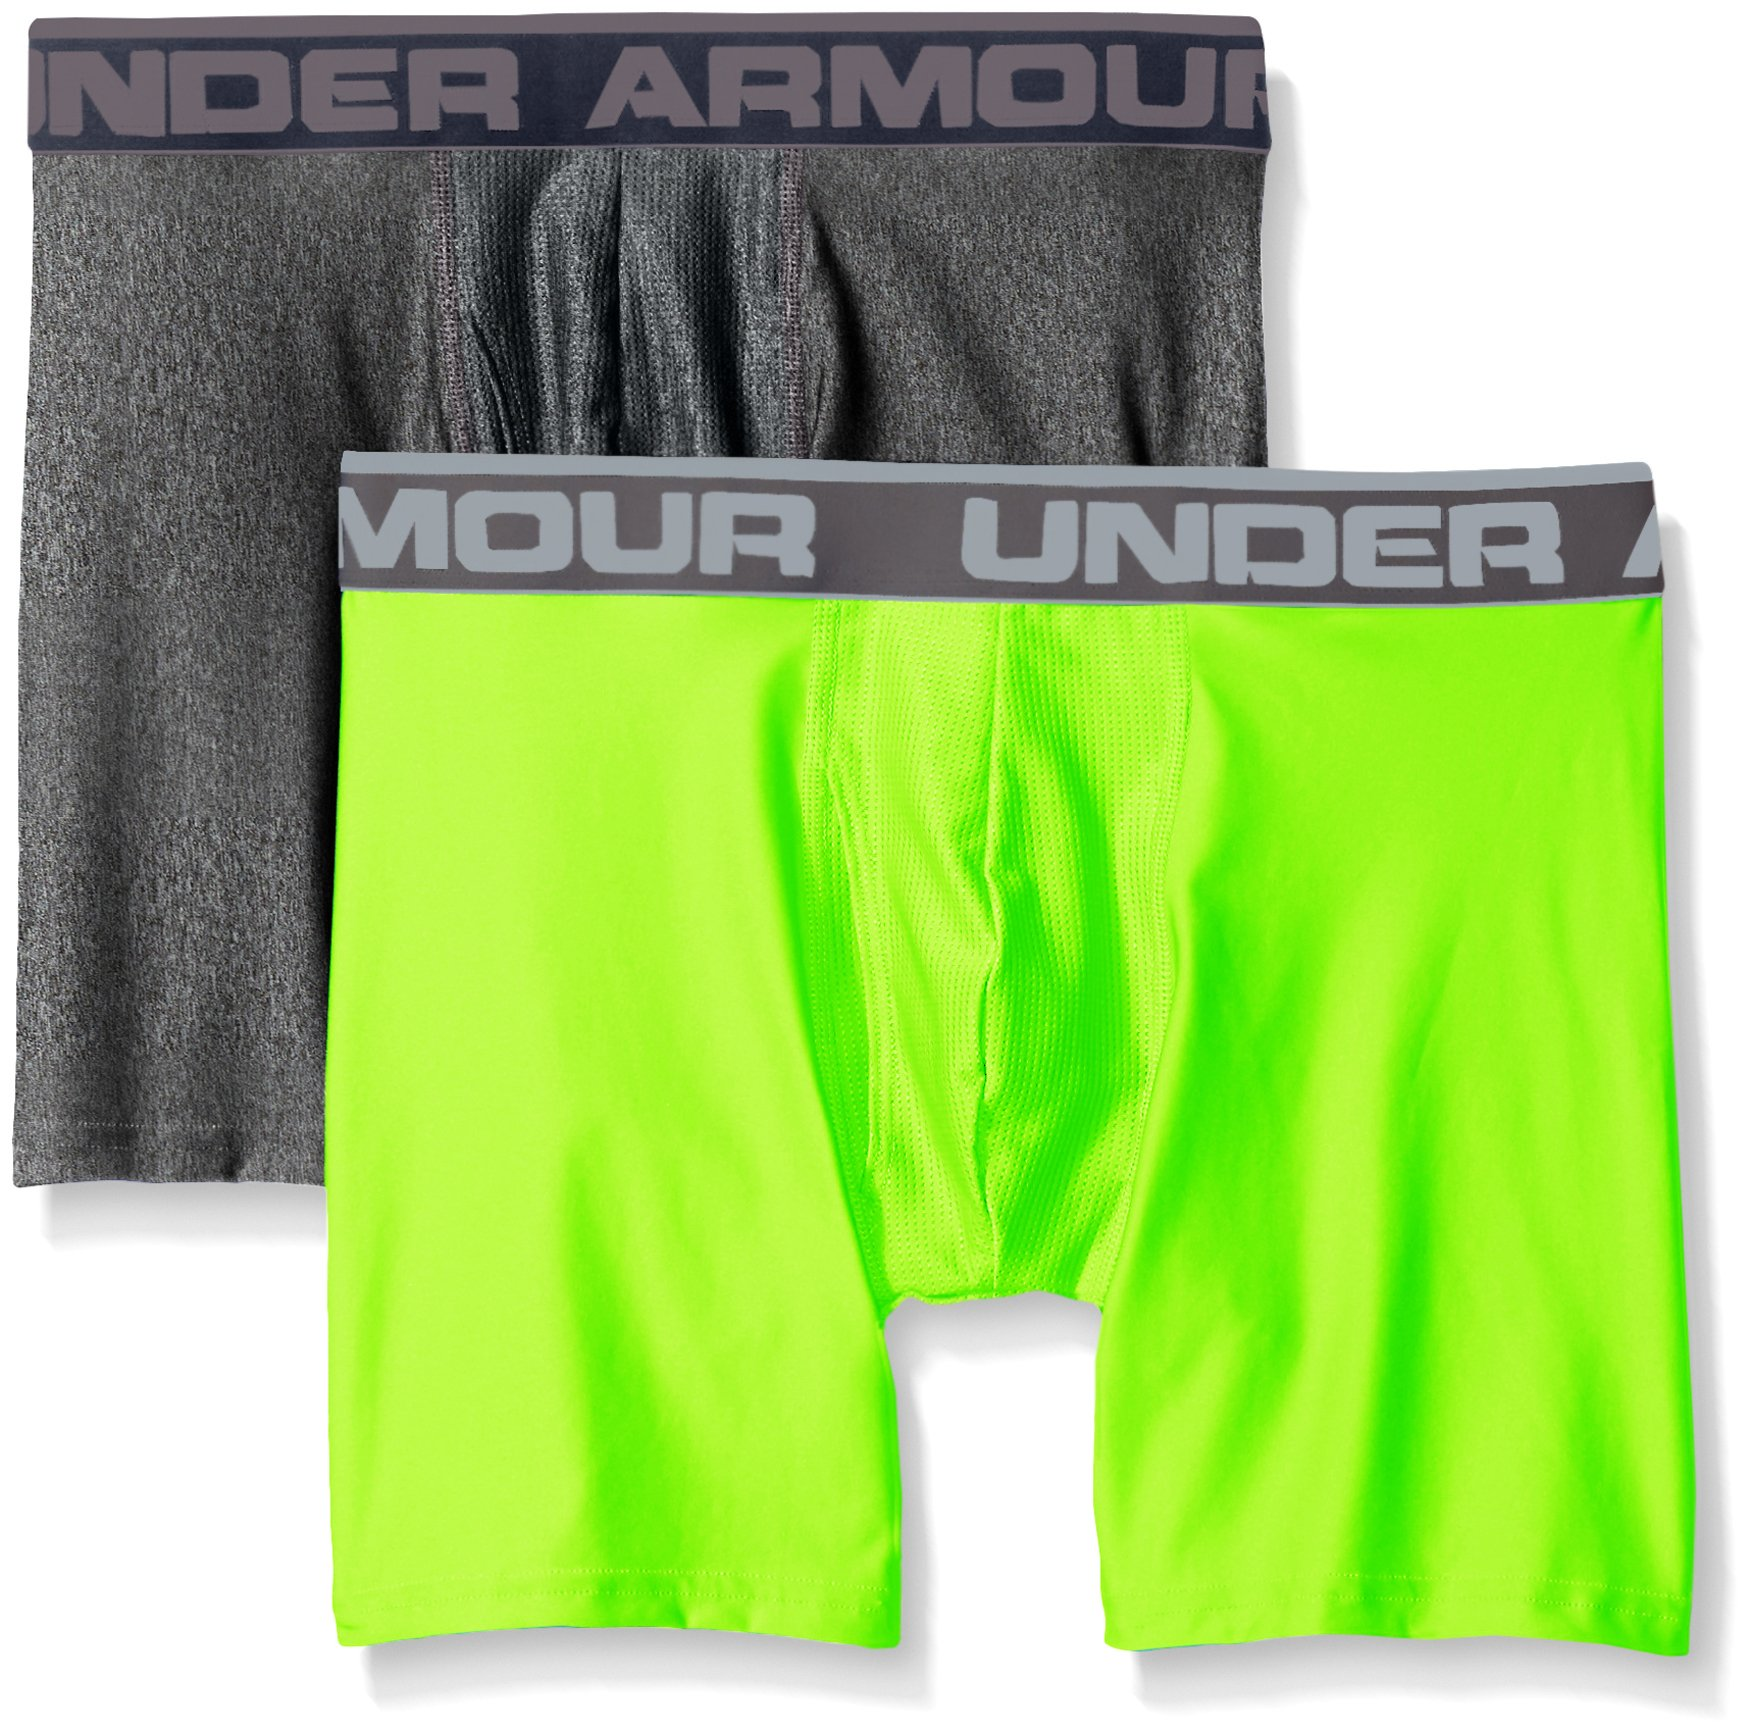 "Under Armour Men's Original Series 6"" Boxerjock, Carbon Heather/Hyper Green, Medium, Pack of 2"